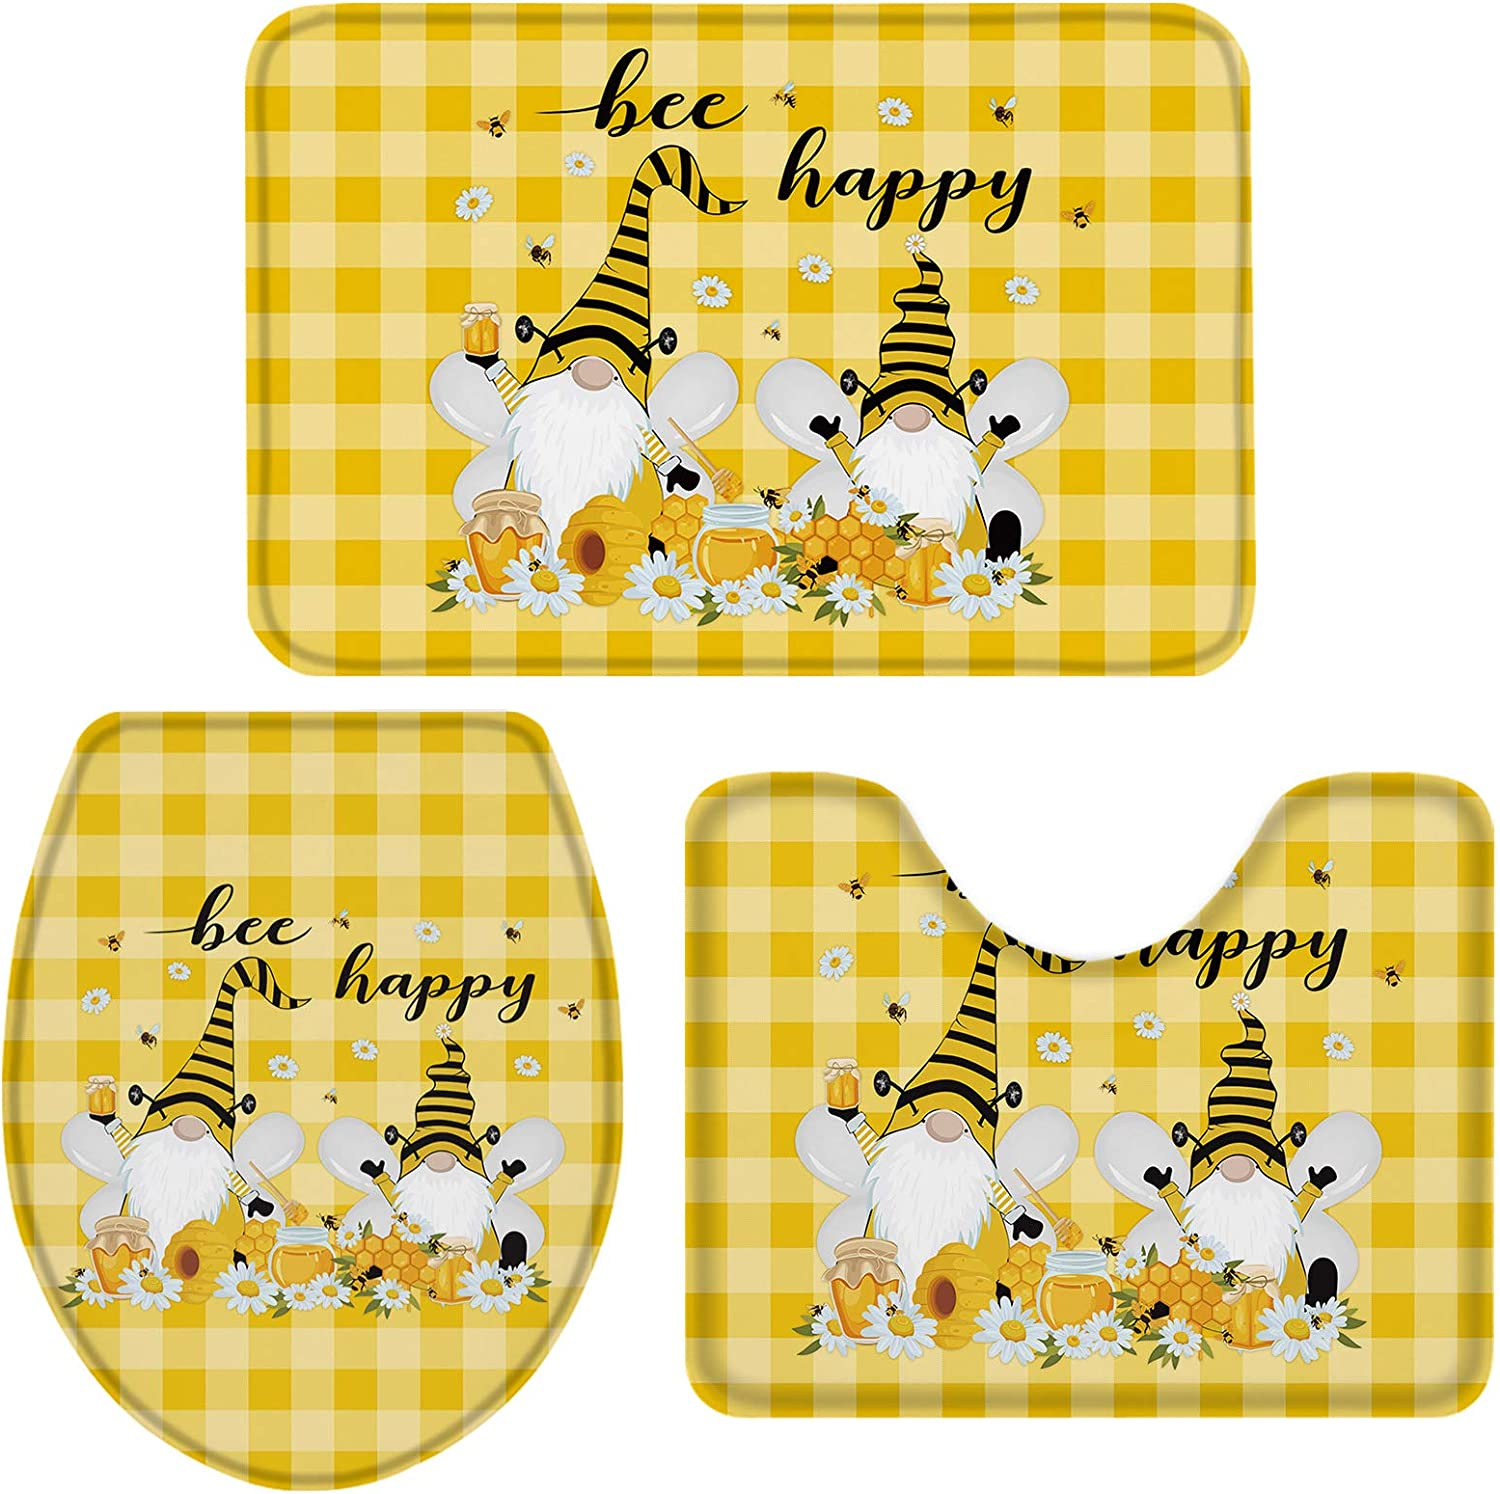 Honey Gnomes Daisy Bee 3 Brand Cheap Sale Venue Pieces Bath Quantity limited and Rugs Non Mats Slip Set